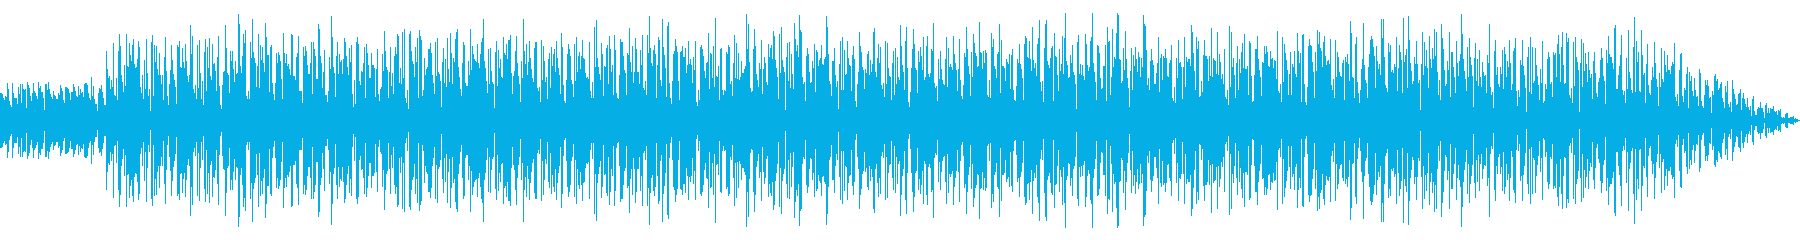 Simple techno sound's reproduced waveform